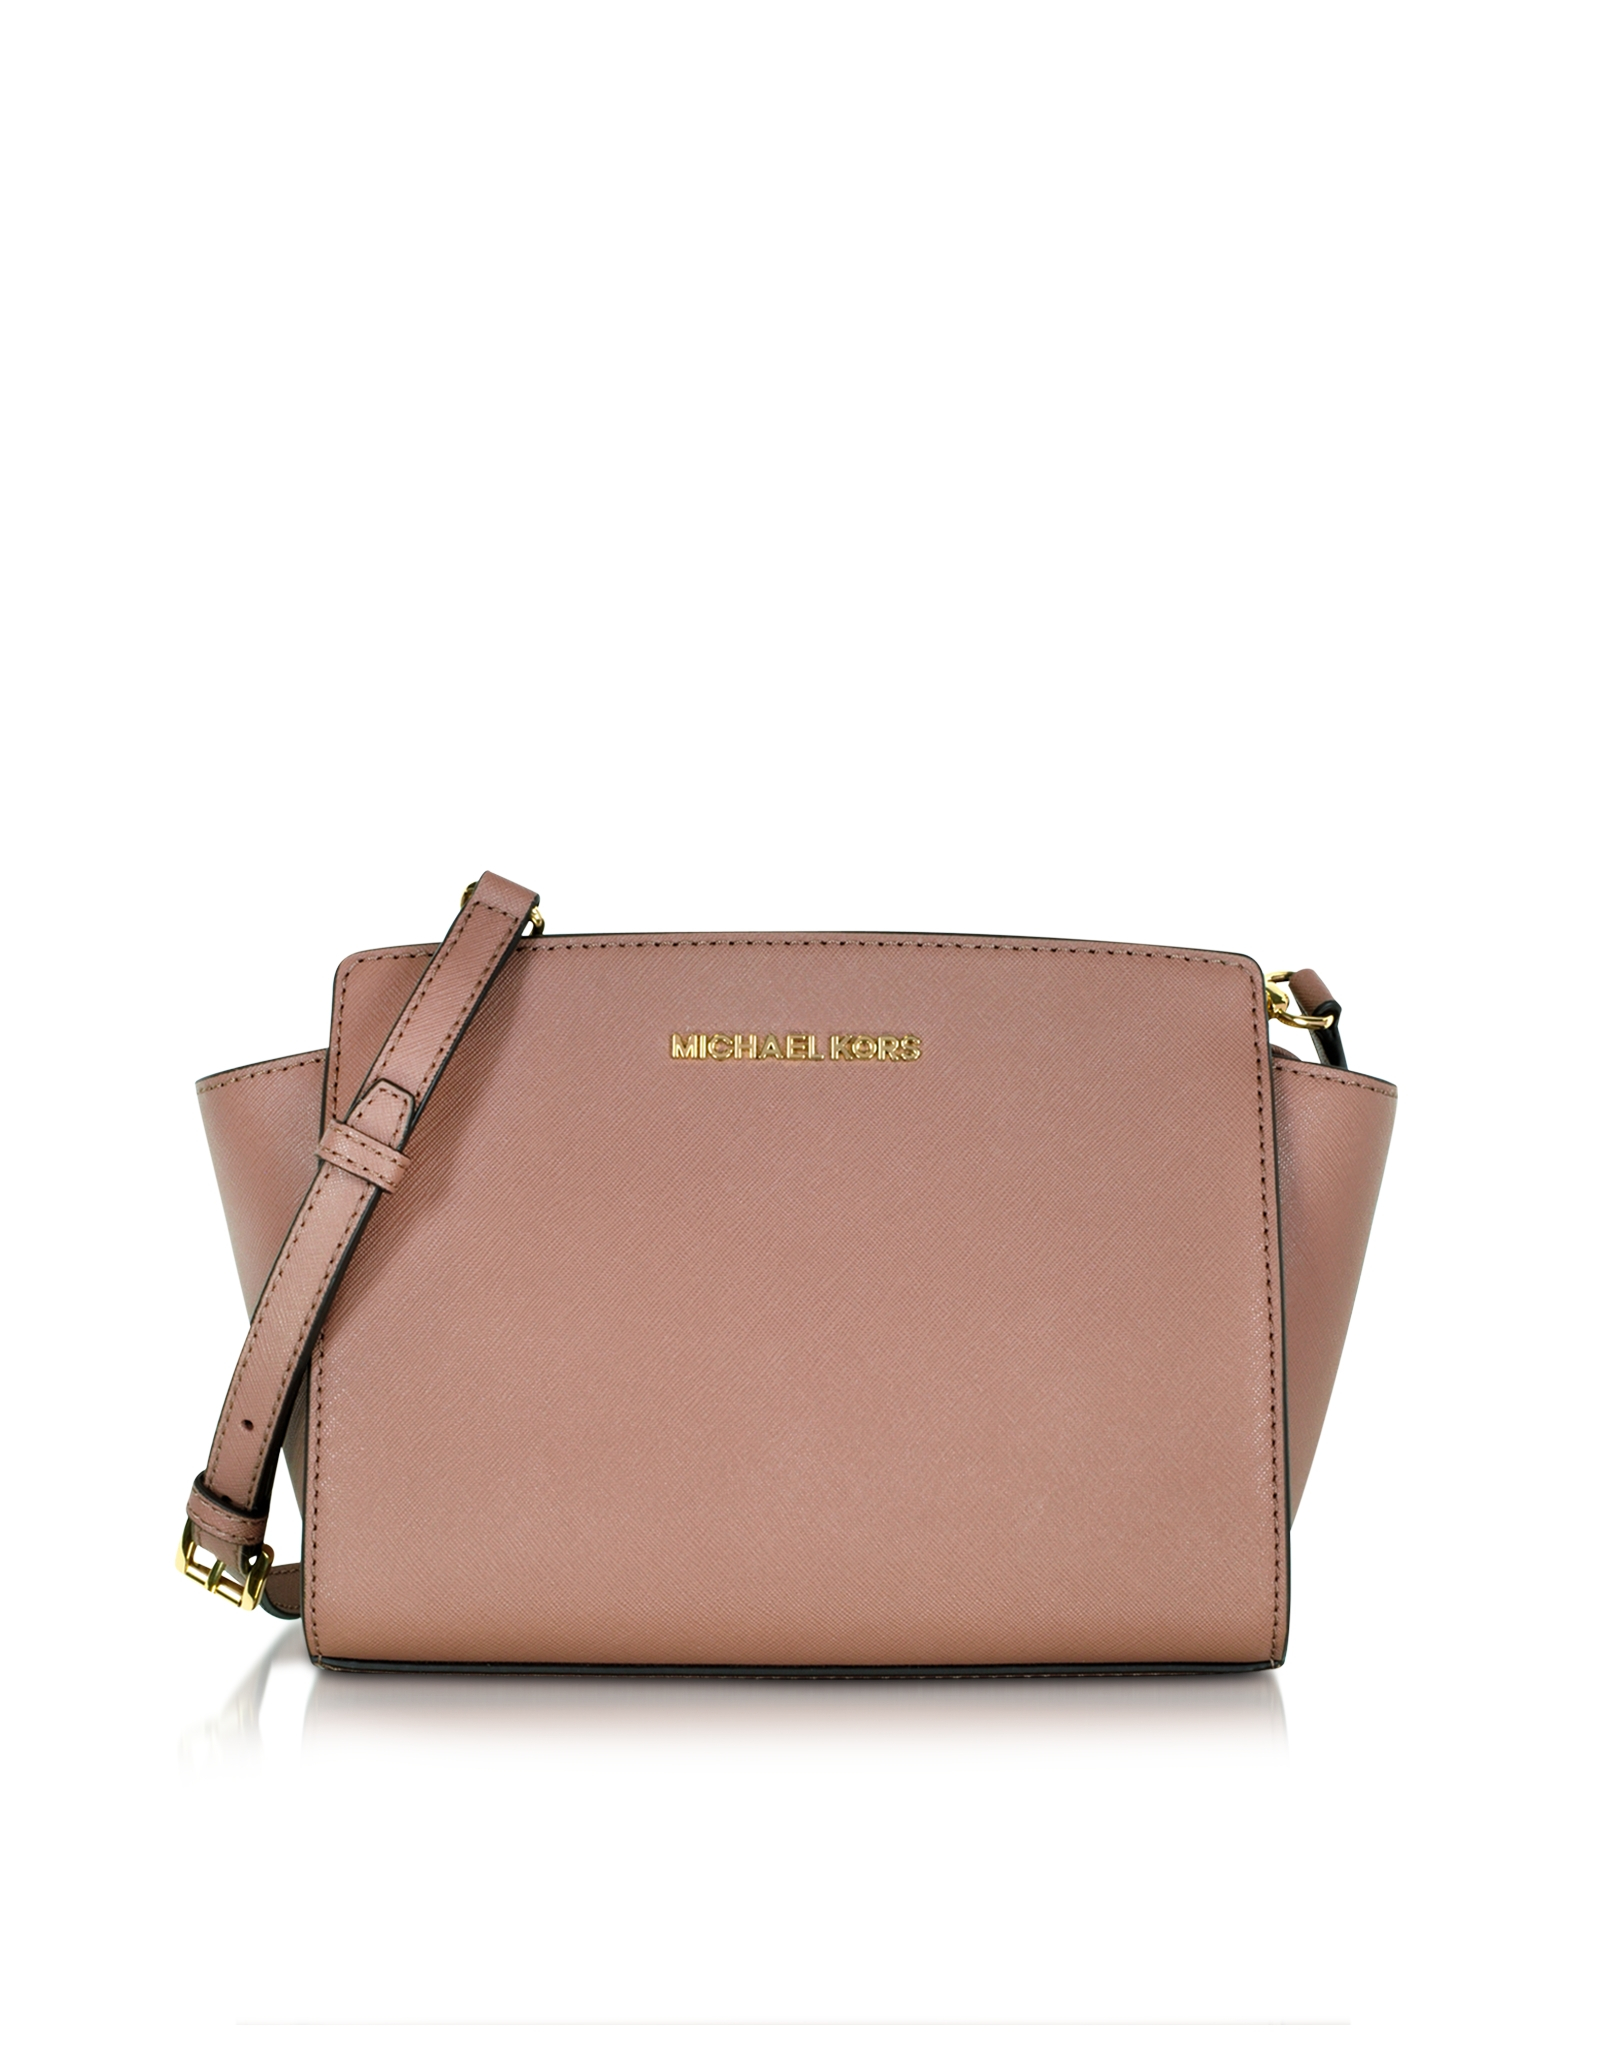 7f9c113d7e64 Lyst - Michael Kors Selma Saffiano Leather Medium Messenger Bag in Pink